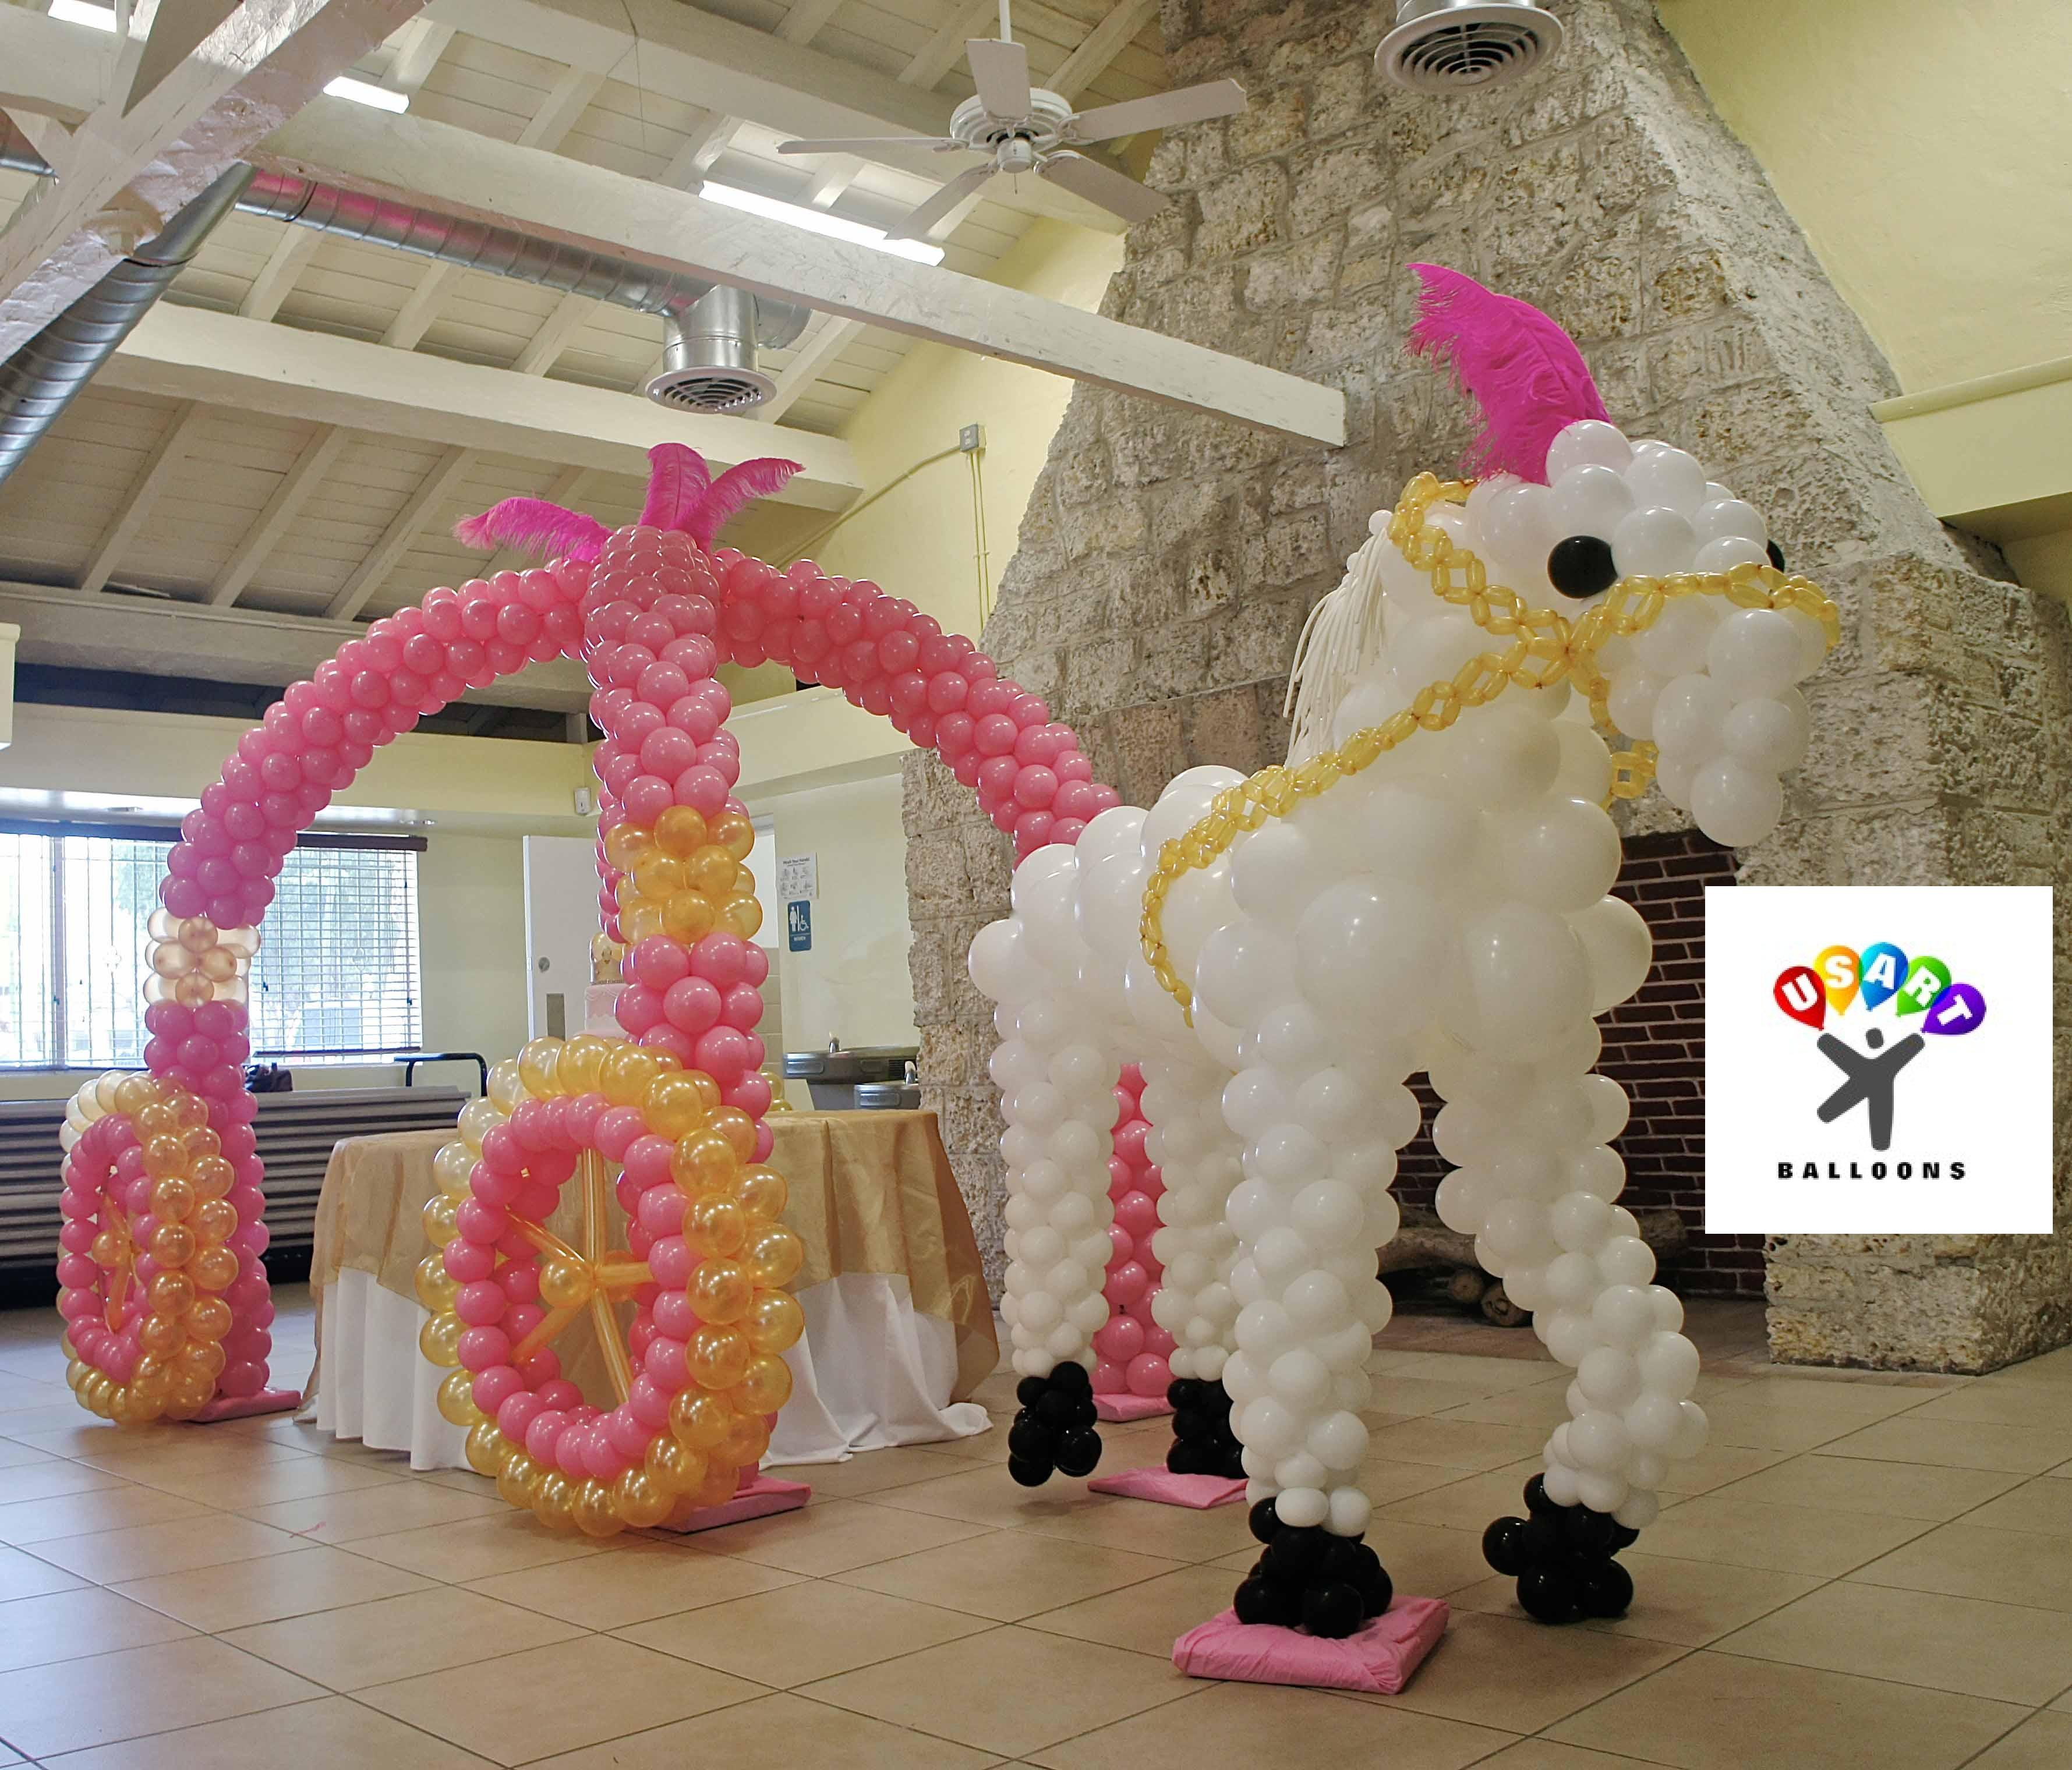 Princess party decor for Balloon decoration ideas for birthdays